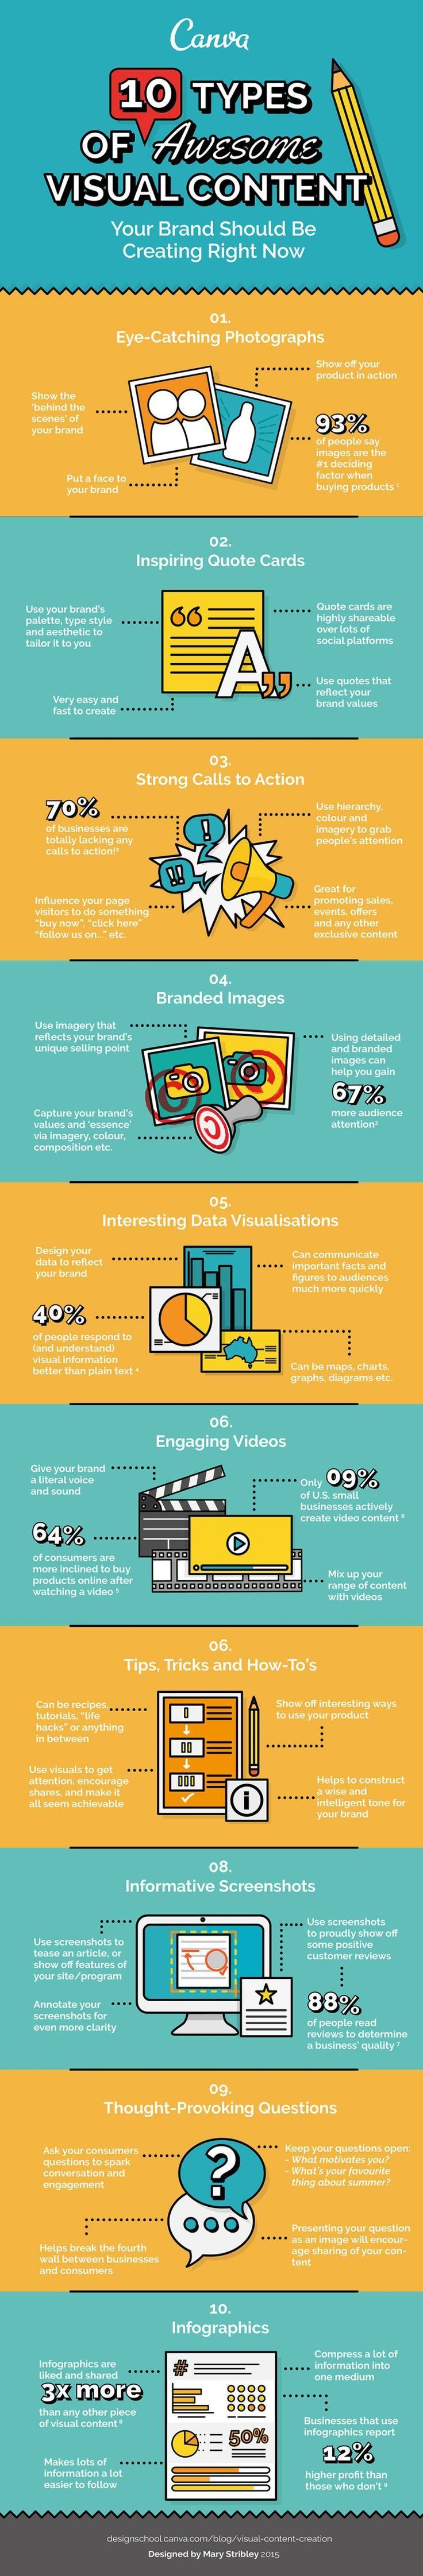 2528 best Infographics images on Pinterest | Info graphics, Overhead ...